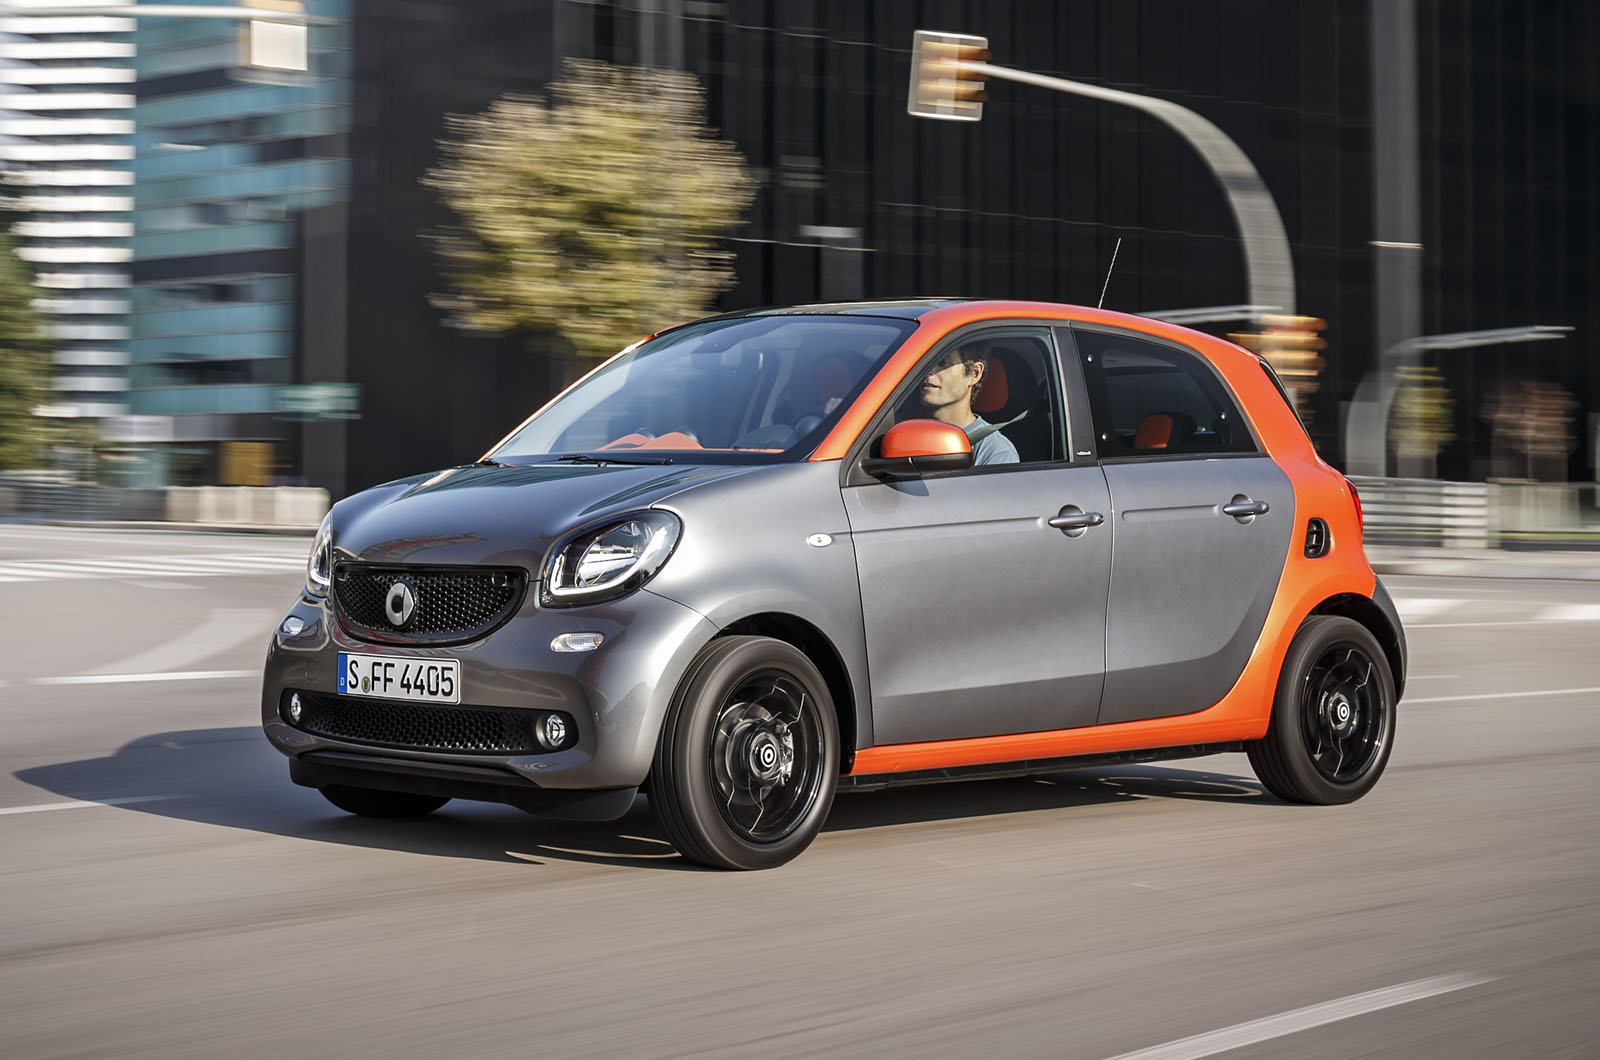 2015 smart fortwo and forfour pricing engines and specs. Black Bedroom Furniture Sets. Home Design Ideas